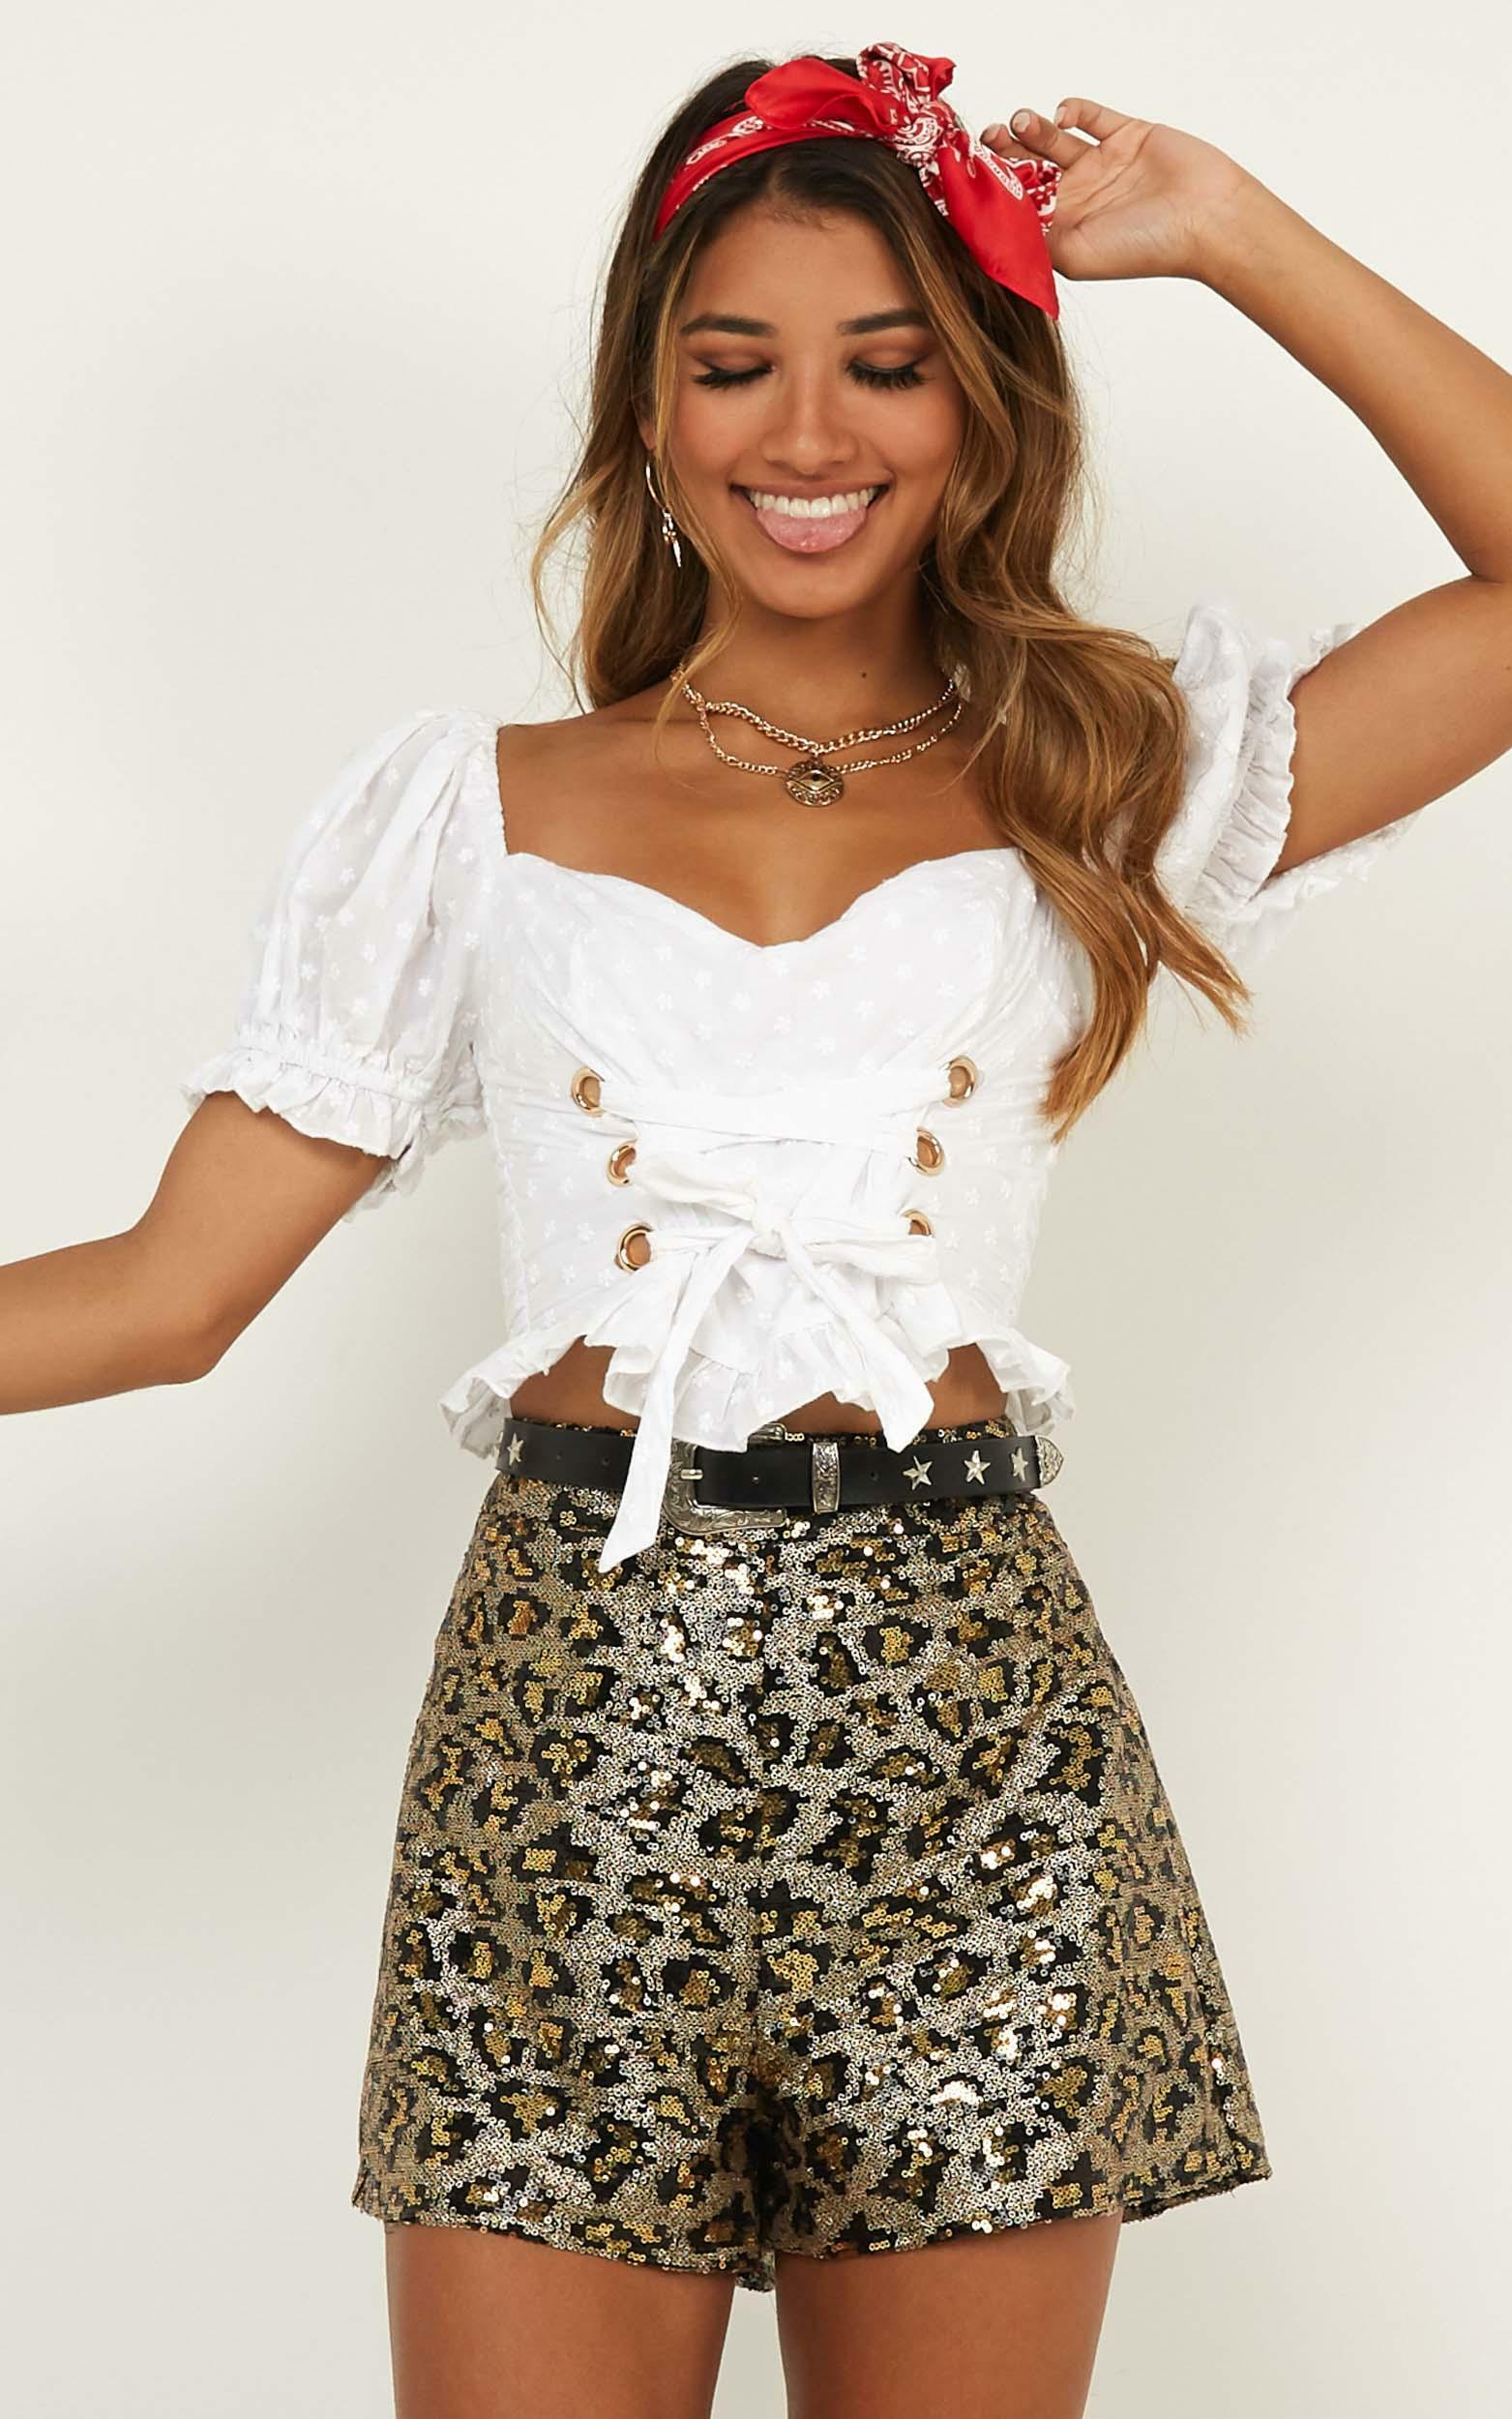 Made In Miami Shorts in leopard sequin - 12 (L), Brown, hi-res image number null